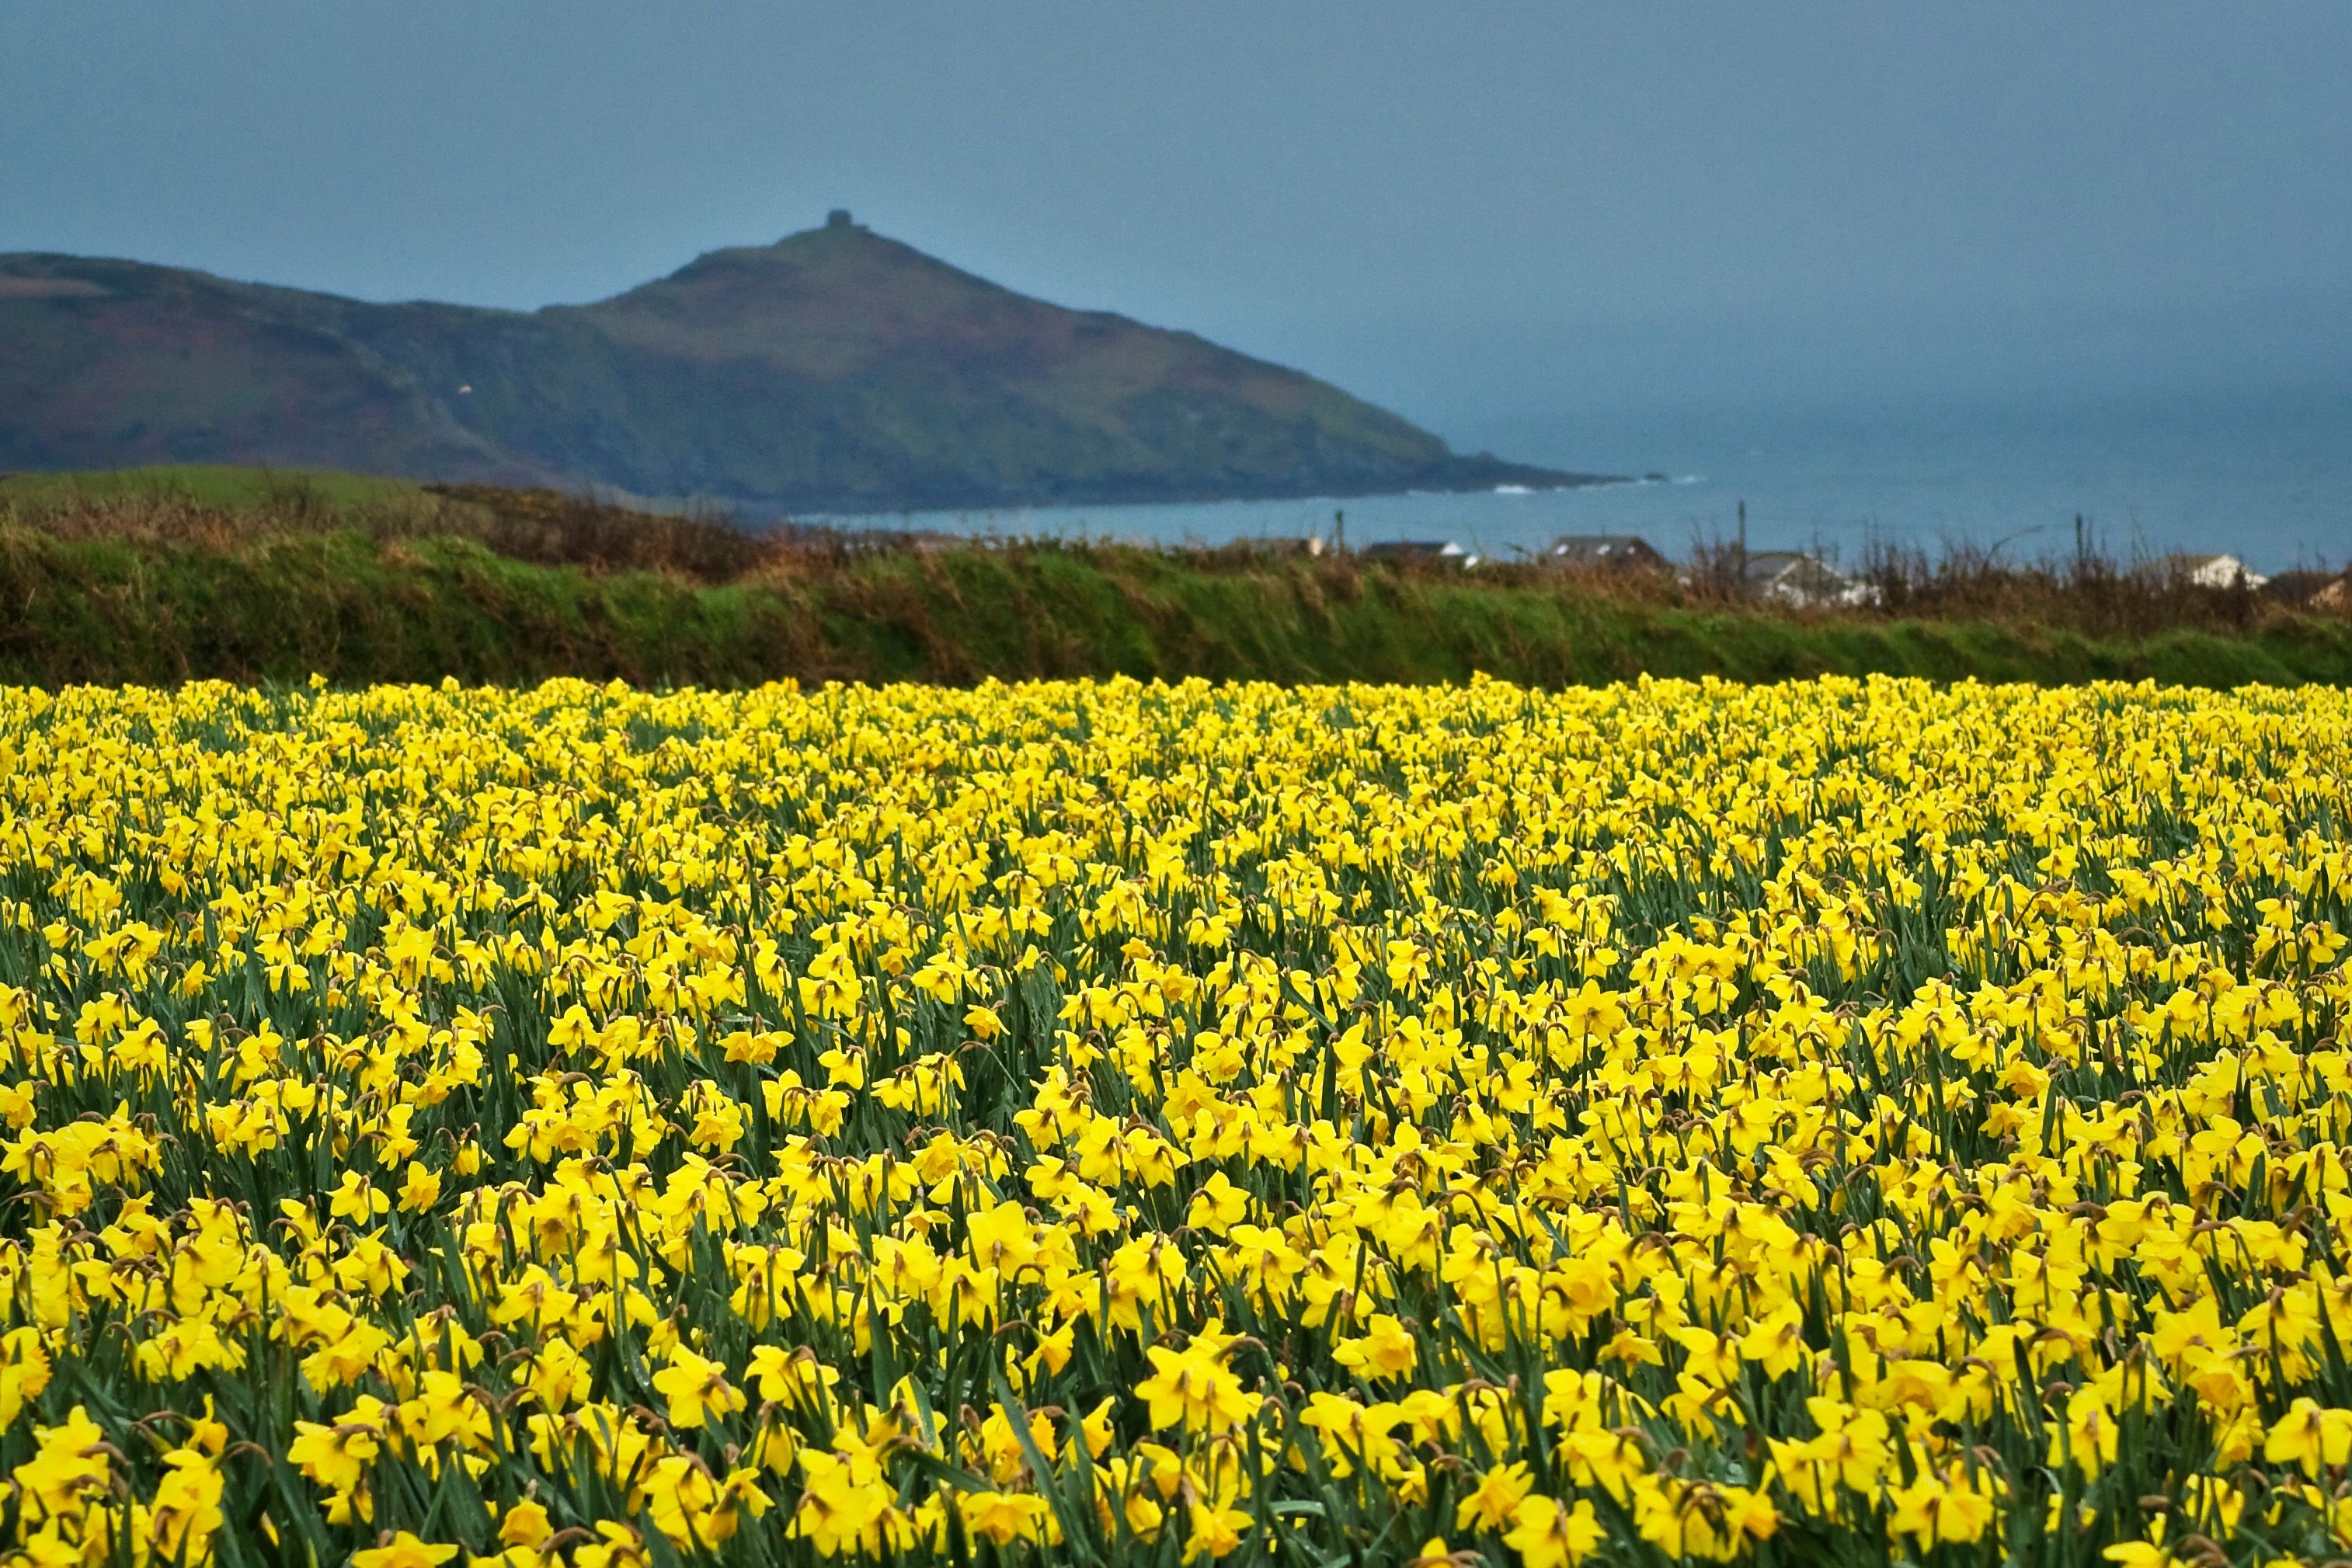 In The Fields Of Daffodils | Pictures of daffodils, Daffodils ...